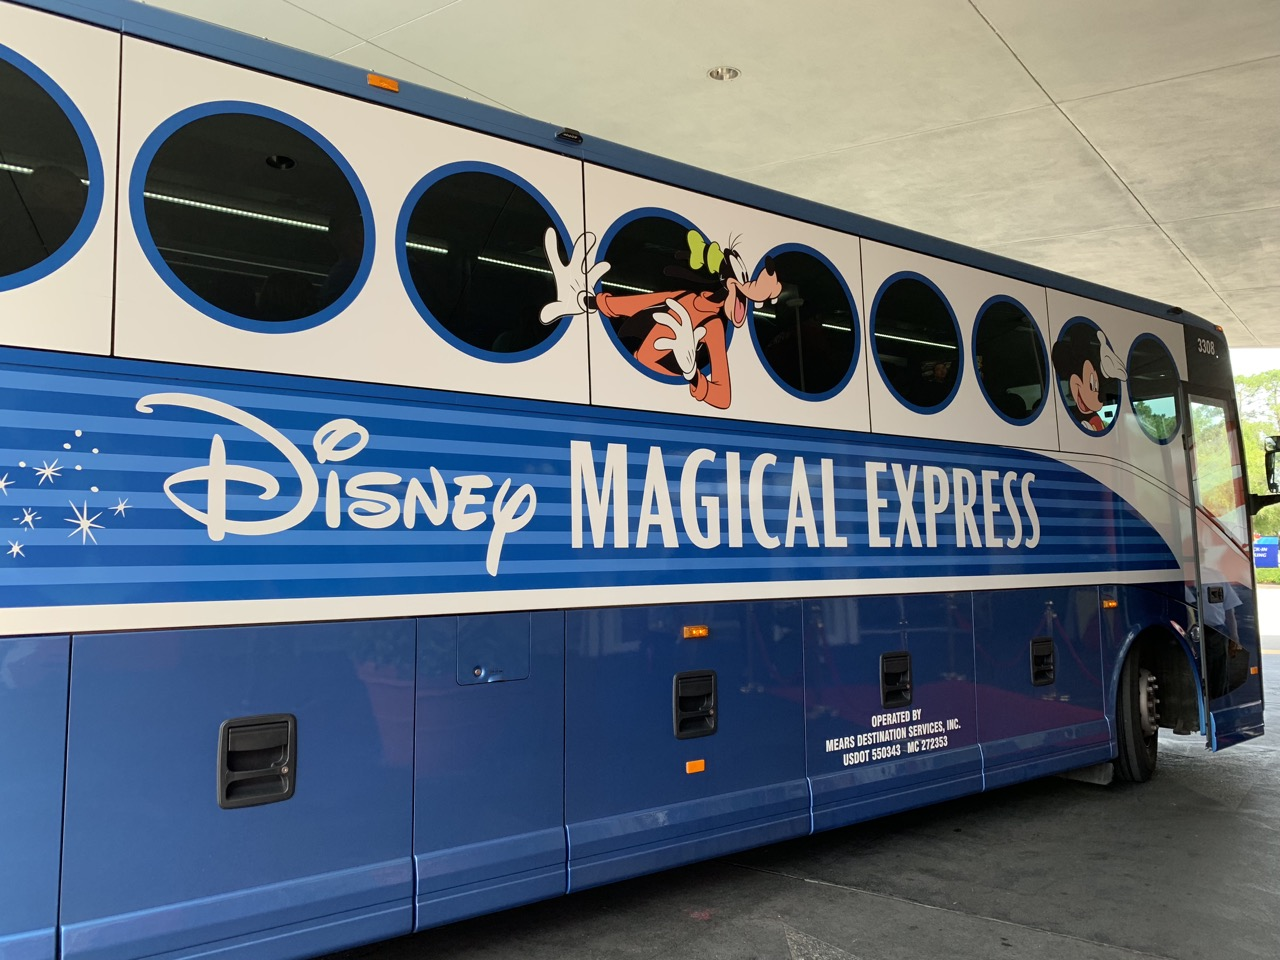 disney world best value resort hotels ranked 00 magical express.jpeg